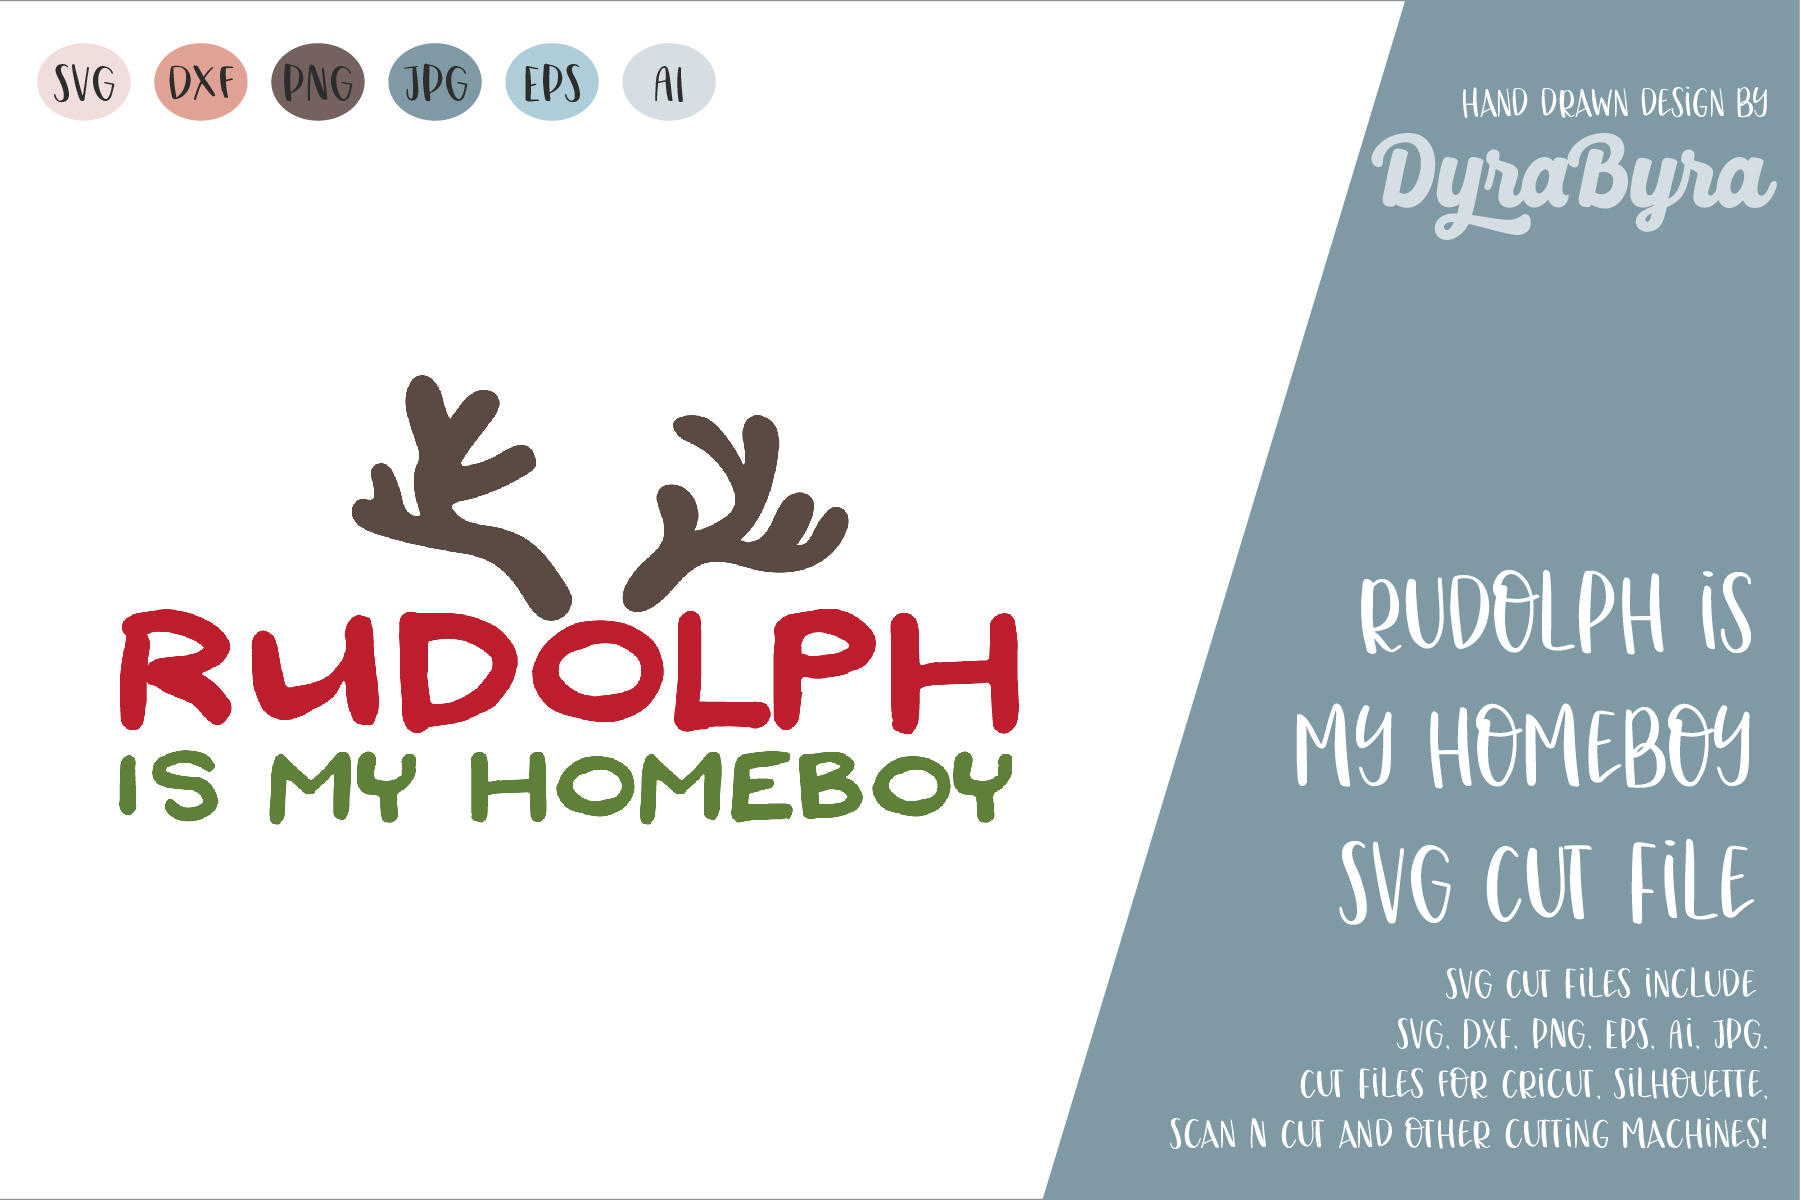 Rudolph is my Homeboy SVG / Fun Christmas SVG Cut file example image 2